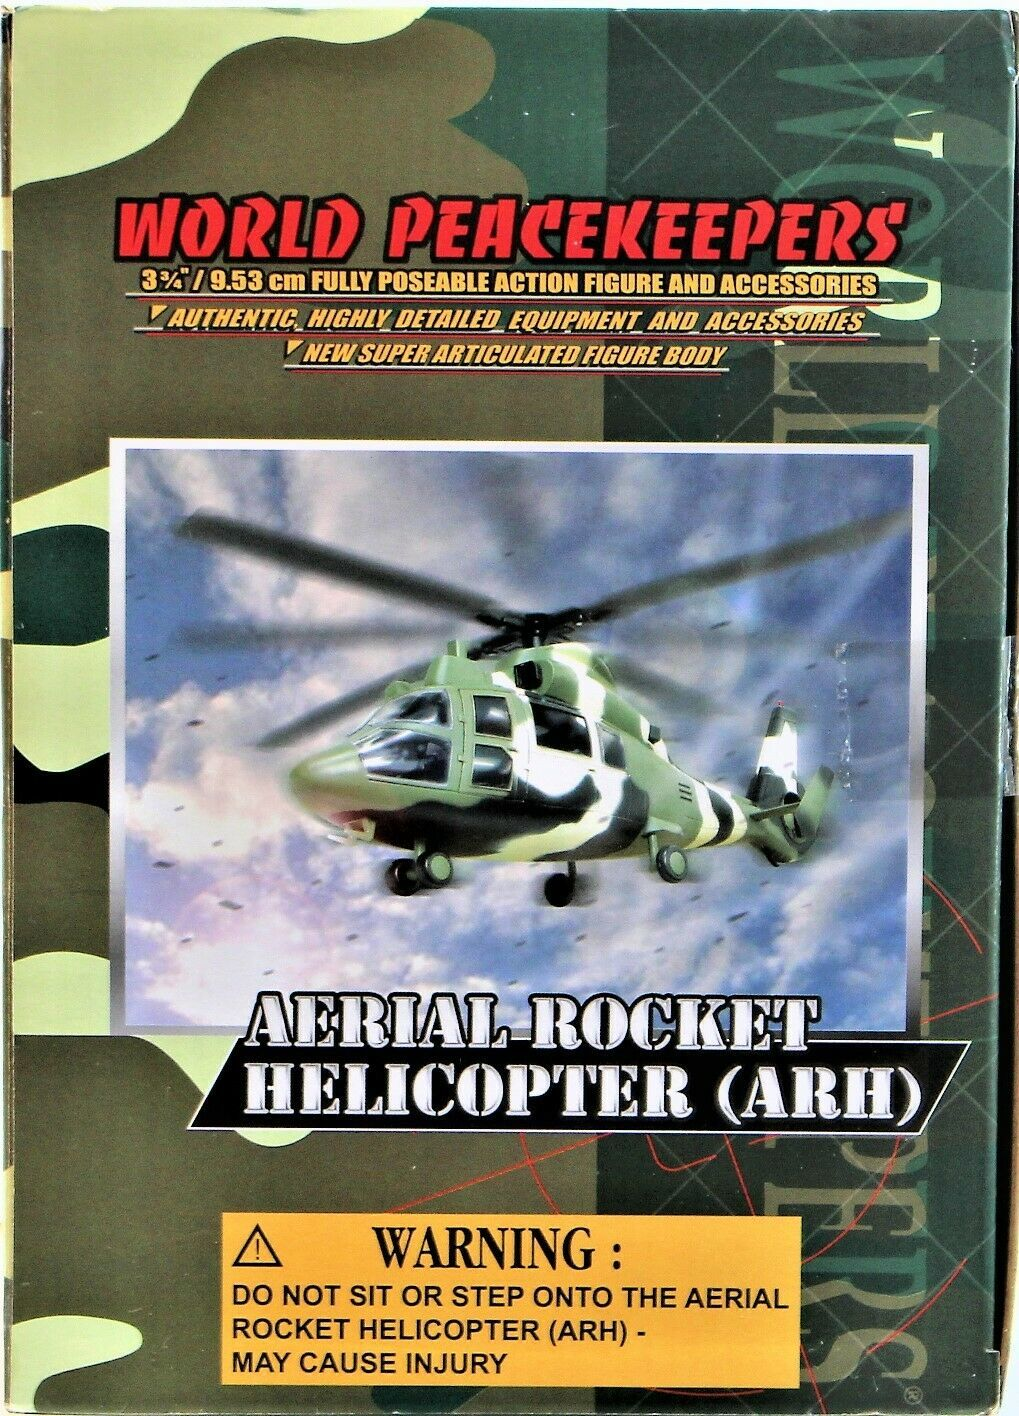 World Peacekeepers Power Team Elite Aerial Rocket Helicopter (ARH) 1:18 Scale image 7